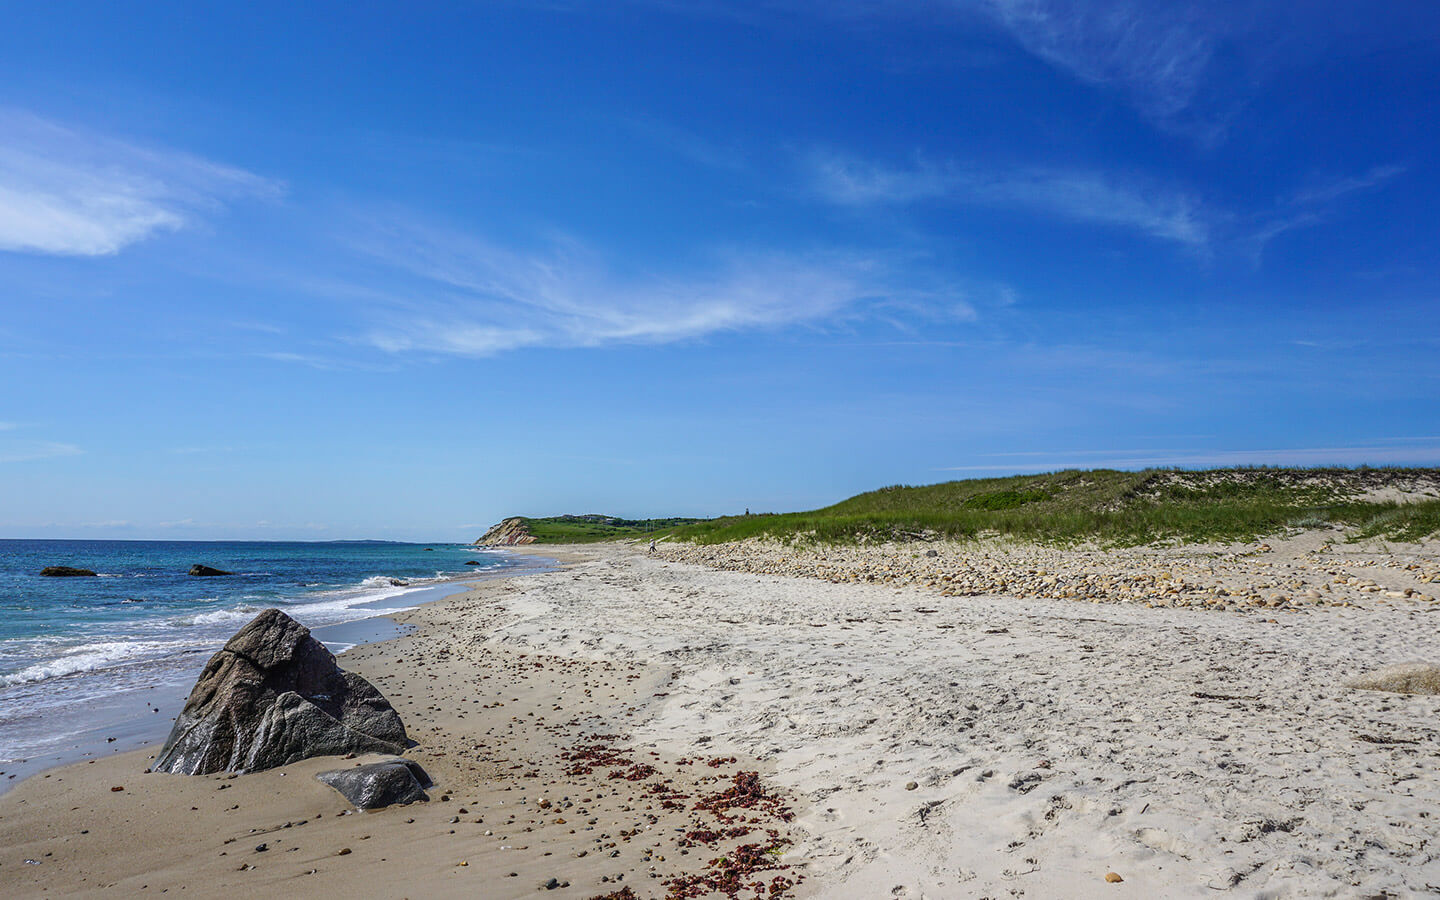 The perfect beach for a day trip to Martha's Vineyard